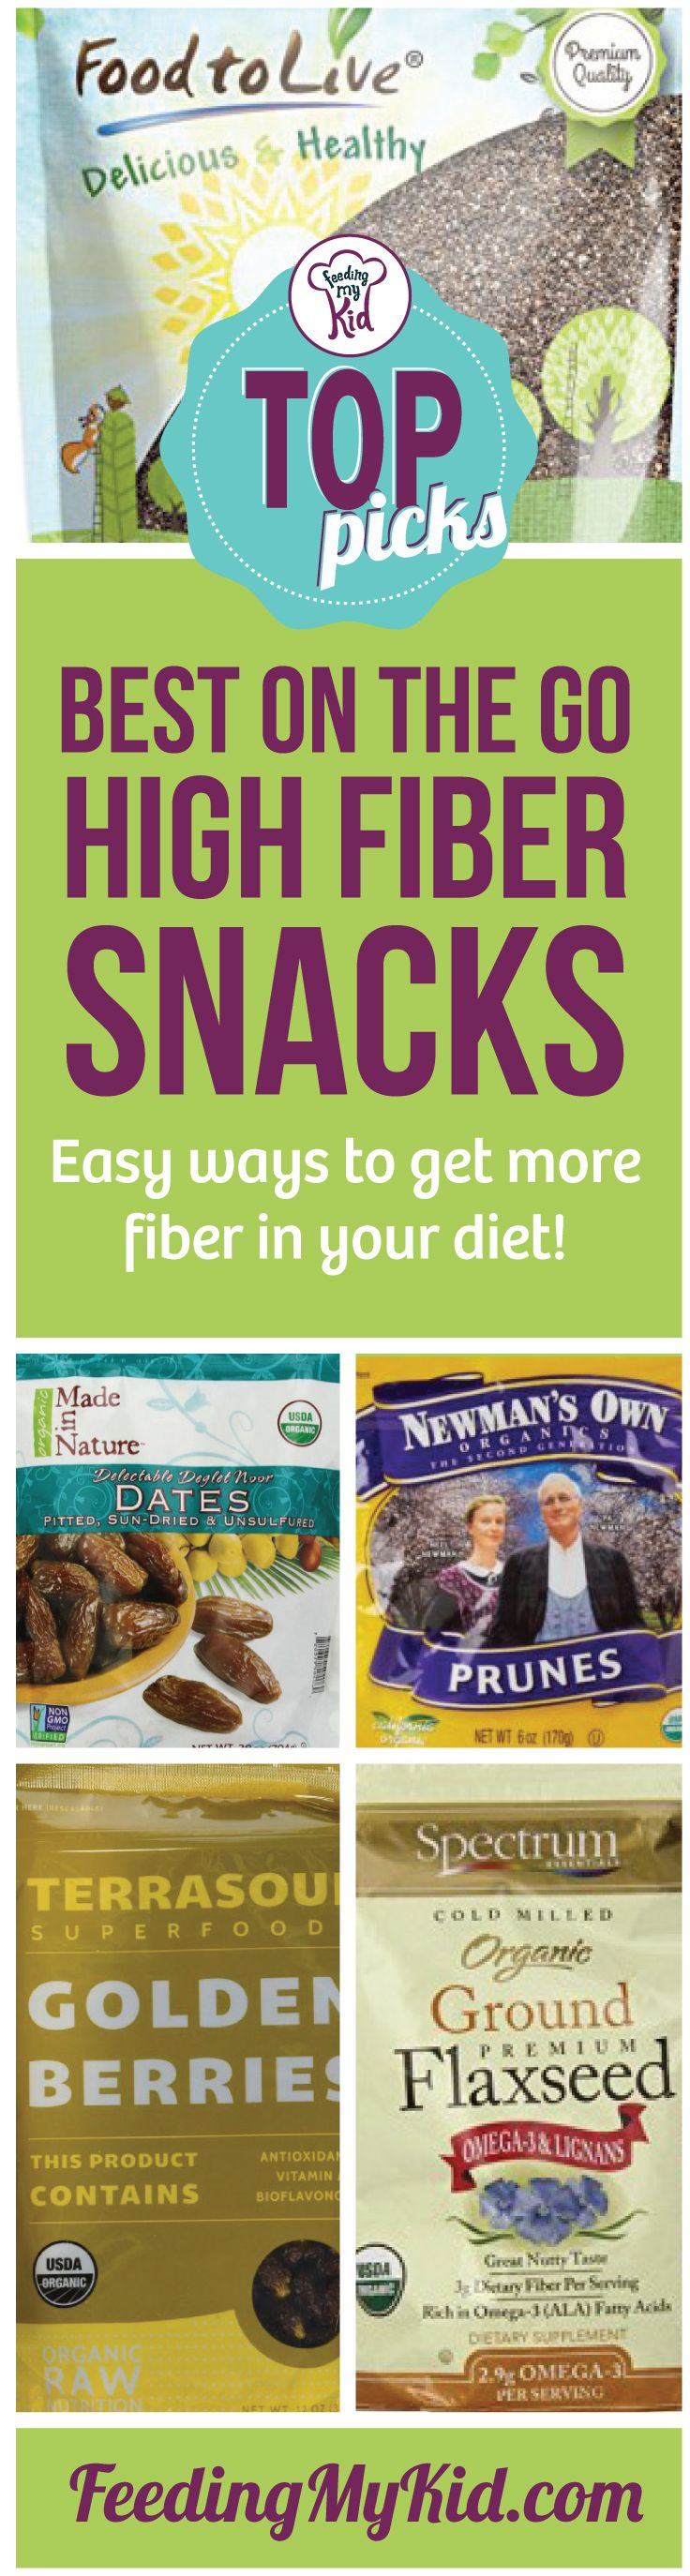 These are our top picks for high fiber snacks on the go! We curated a number of…